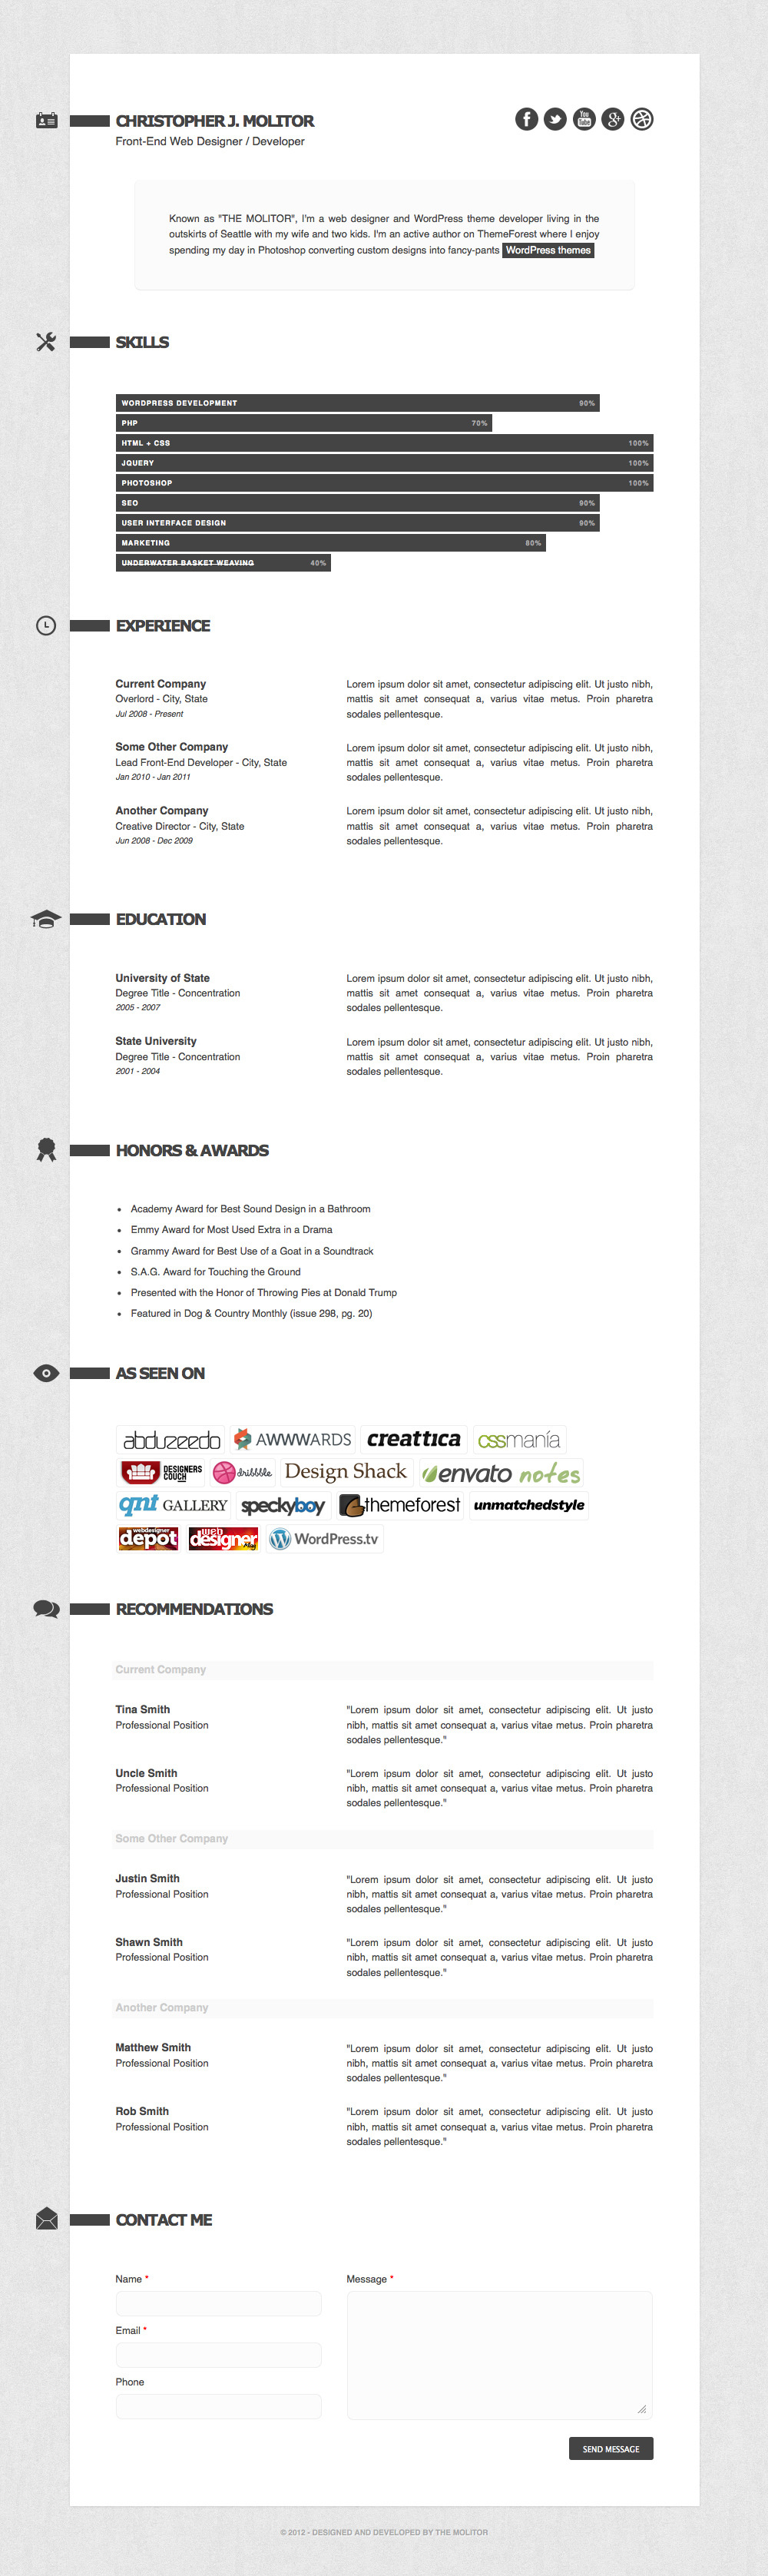 the applicant resume cv html template by themolitor themeforest preview 1 preview jpg